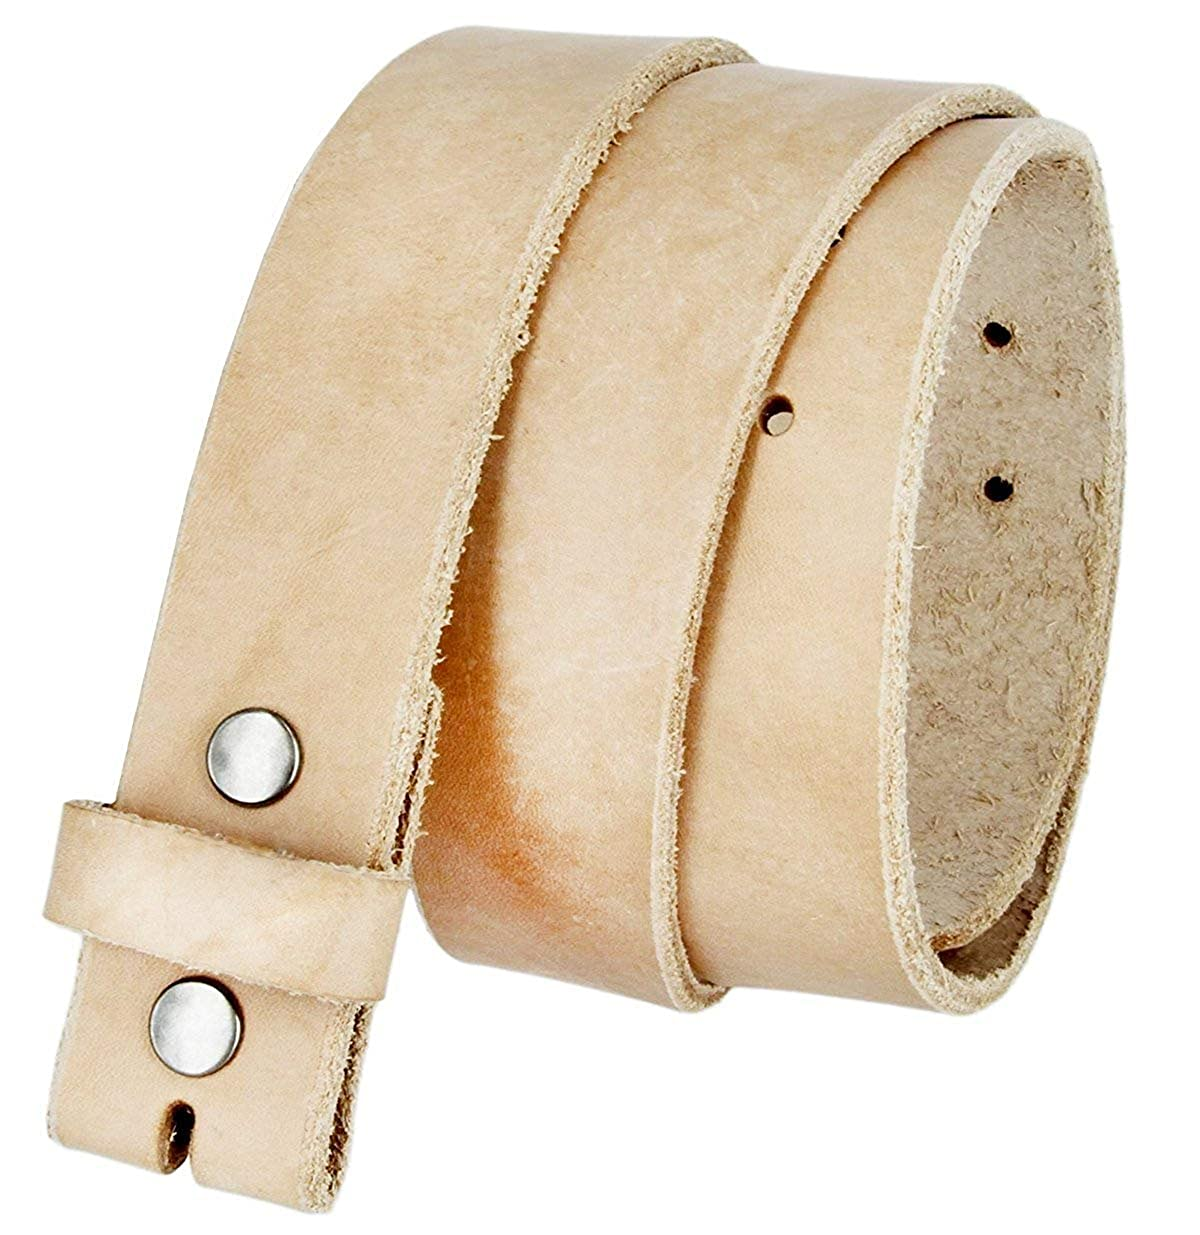 Pele Belt Men 32 mm Wide Natural Color 1 Piece Cowhide Raw Edges Thick Strap